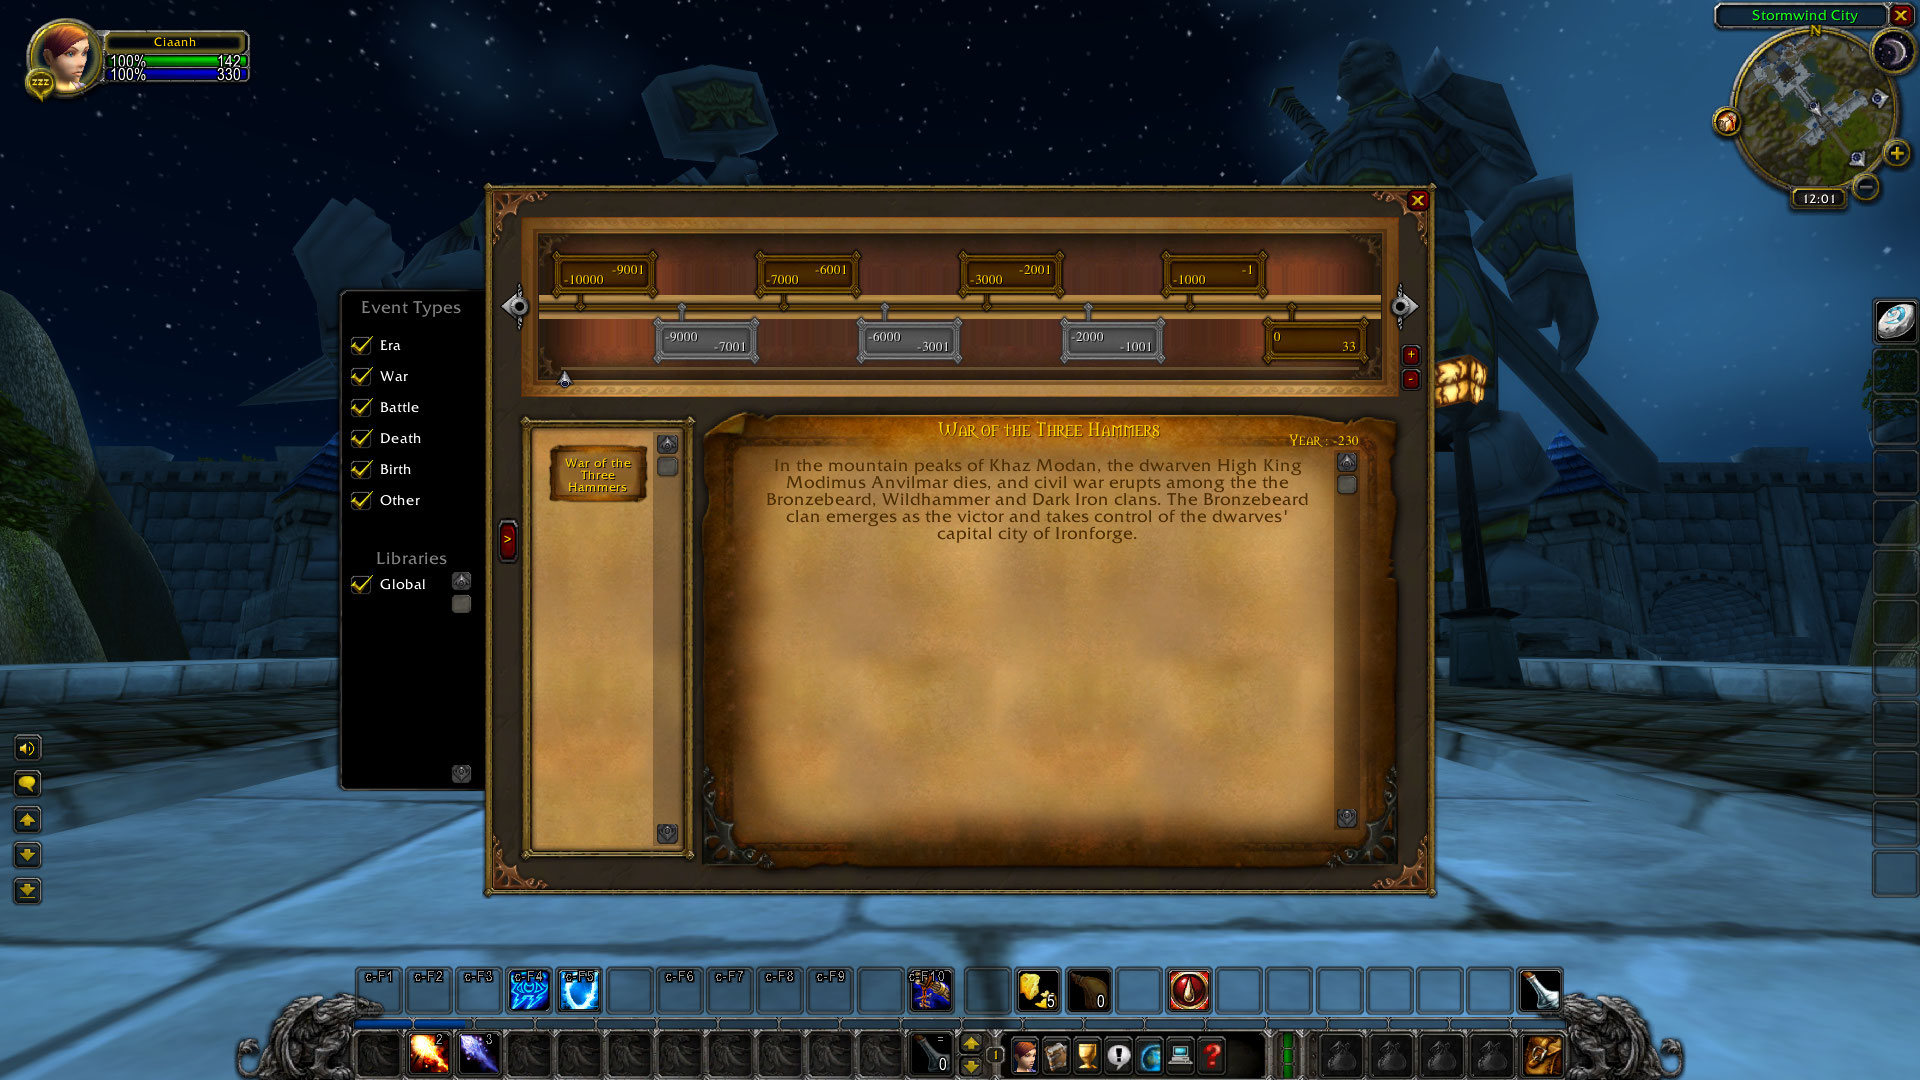 Chronicles Interface